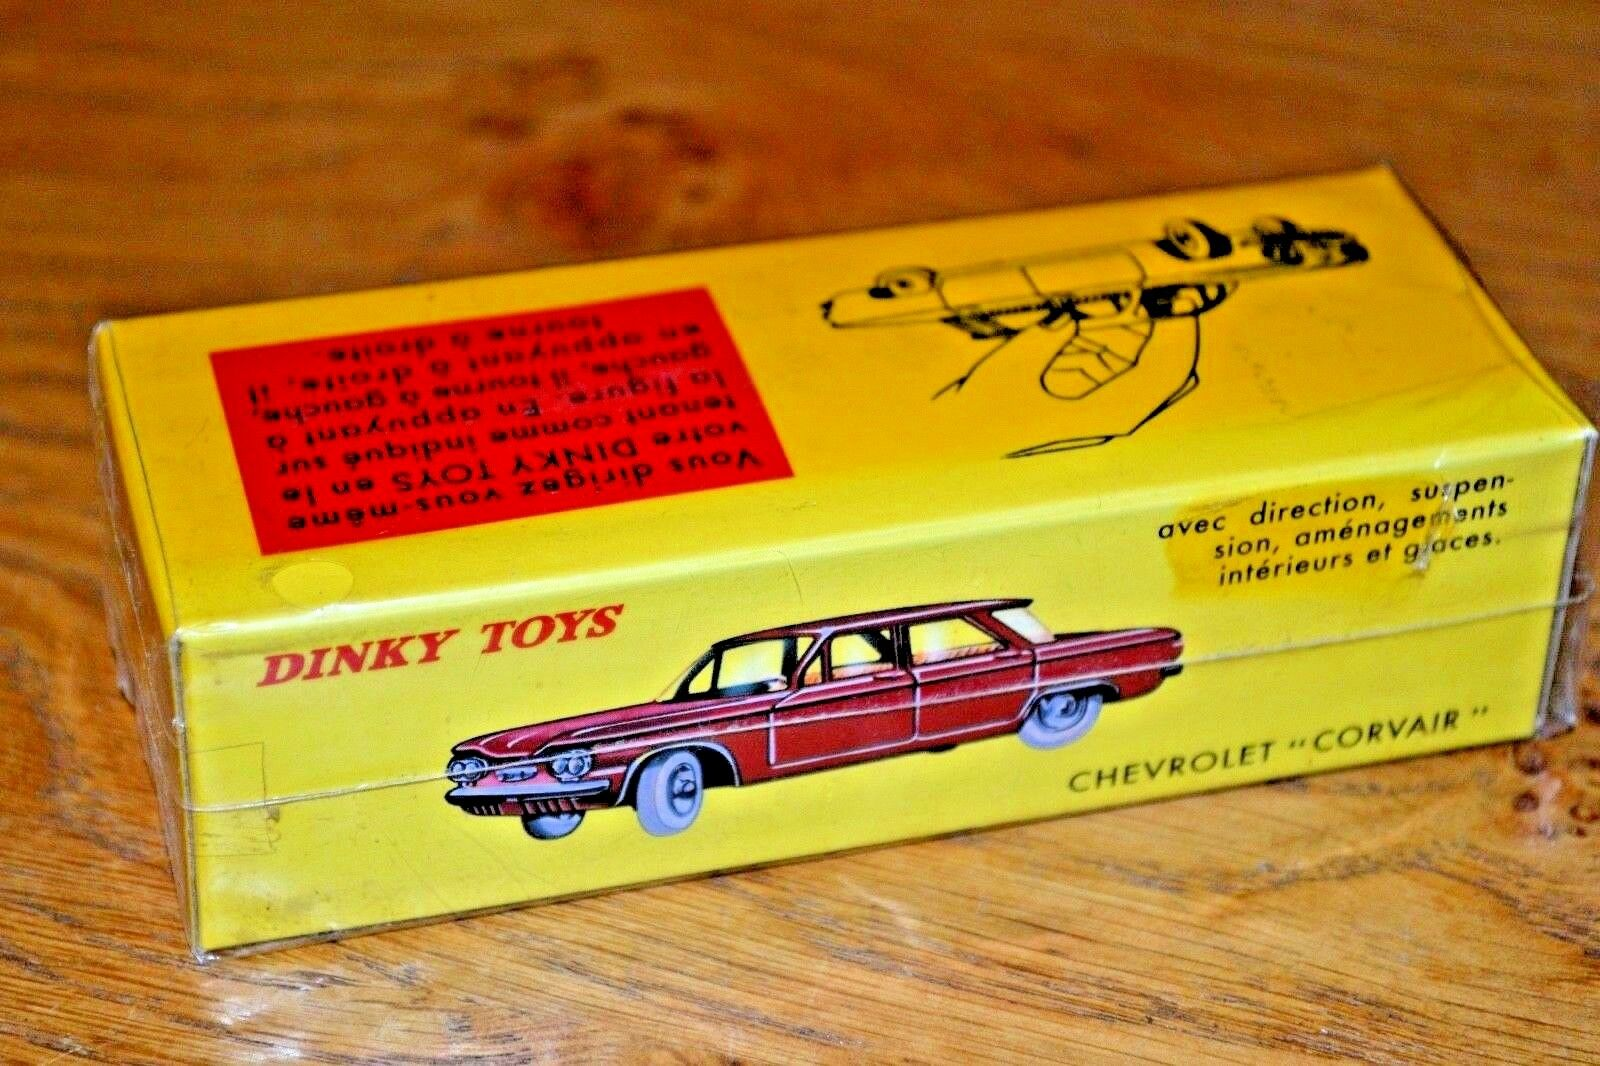 French DINKY TOYS ATLAS EDIZIONE Diecast CHEVROLET CORVAIR N. 552